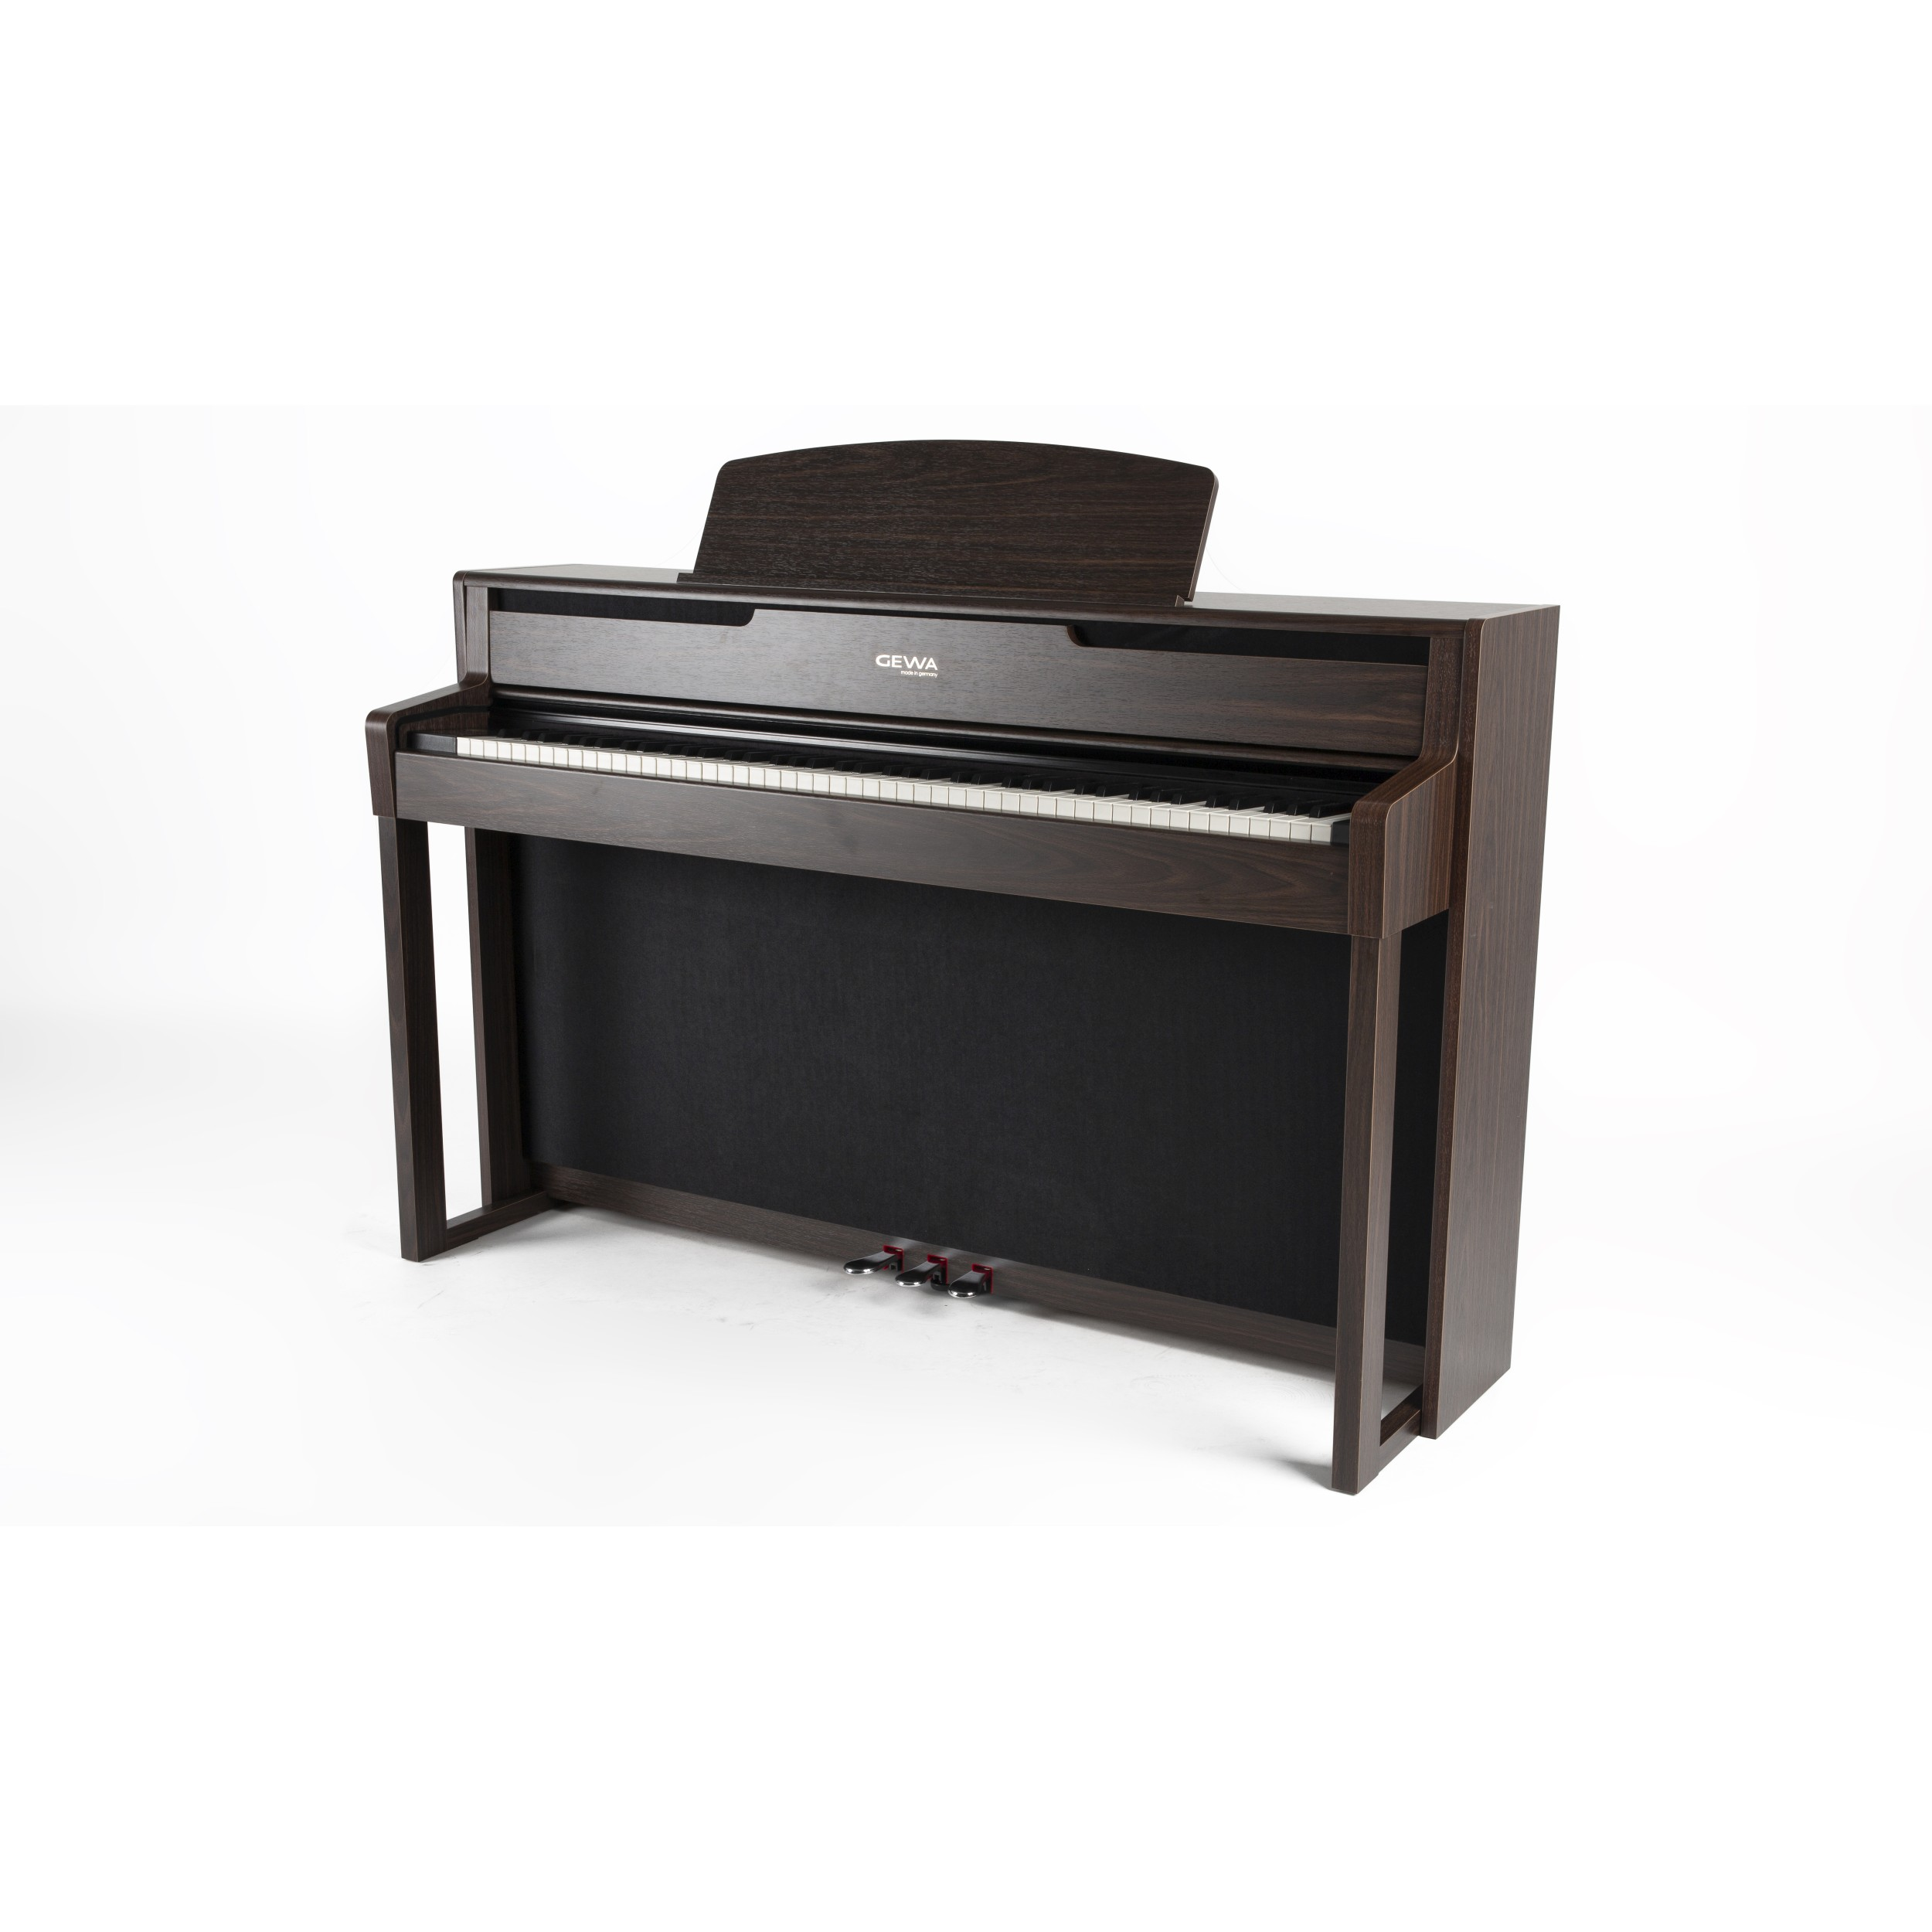 GEWA Digitalpiano UP 400 Rosenholz matt